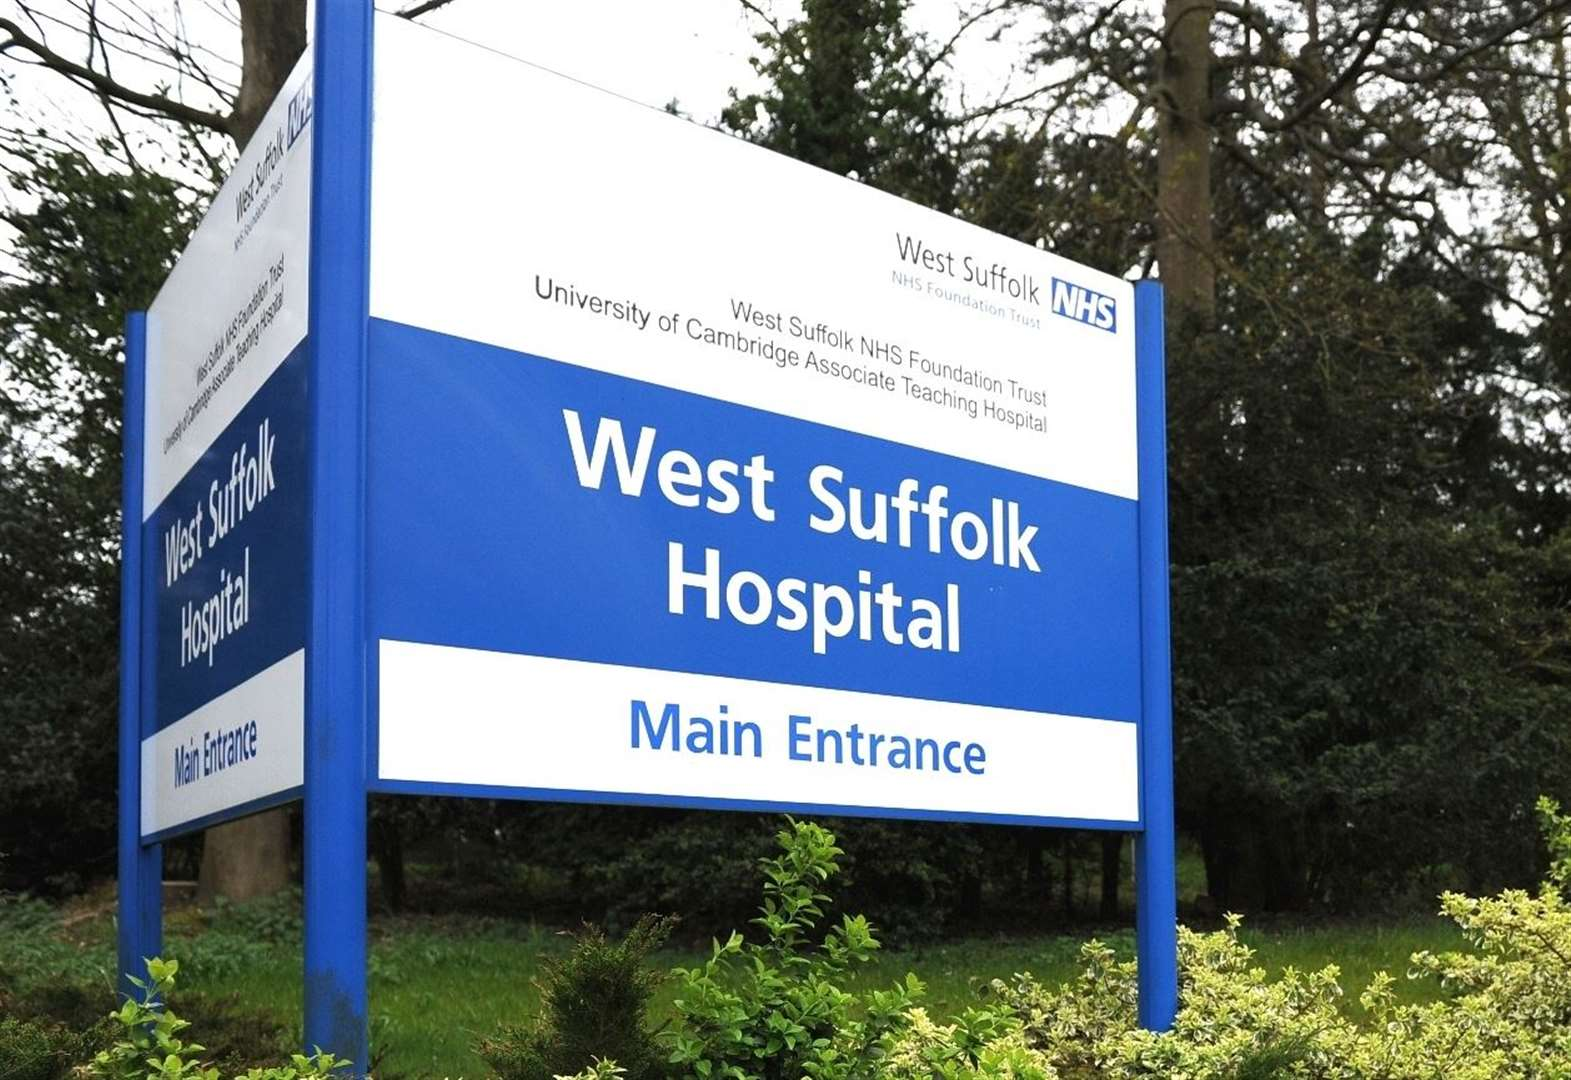 West Suffolk Hospital nationally recognised as a top hospital